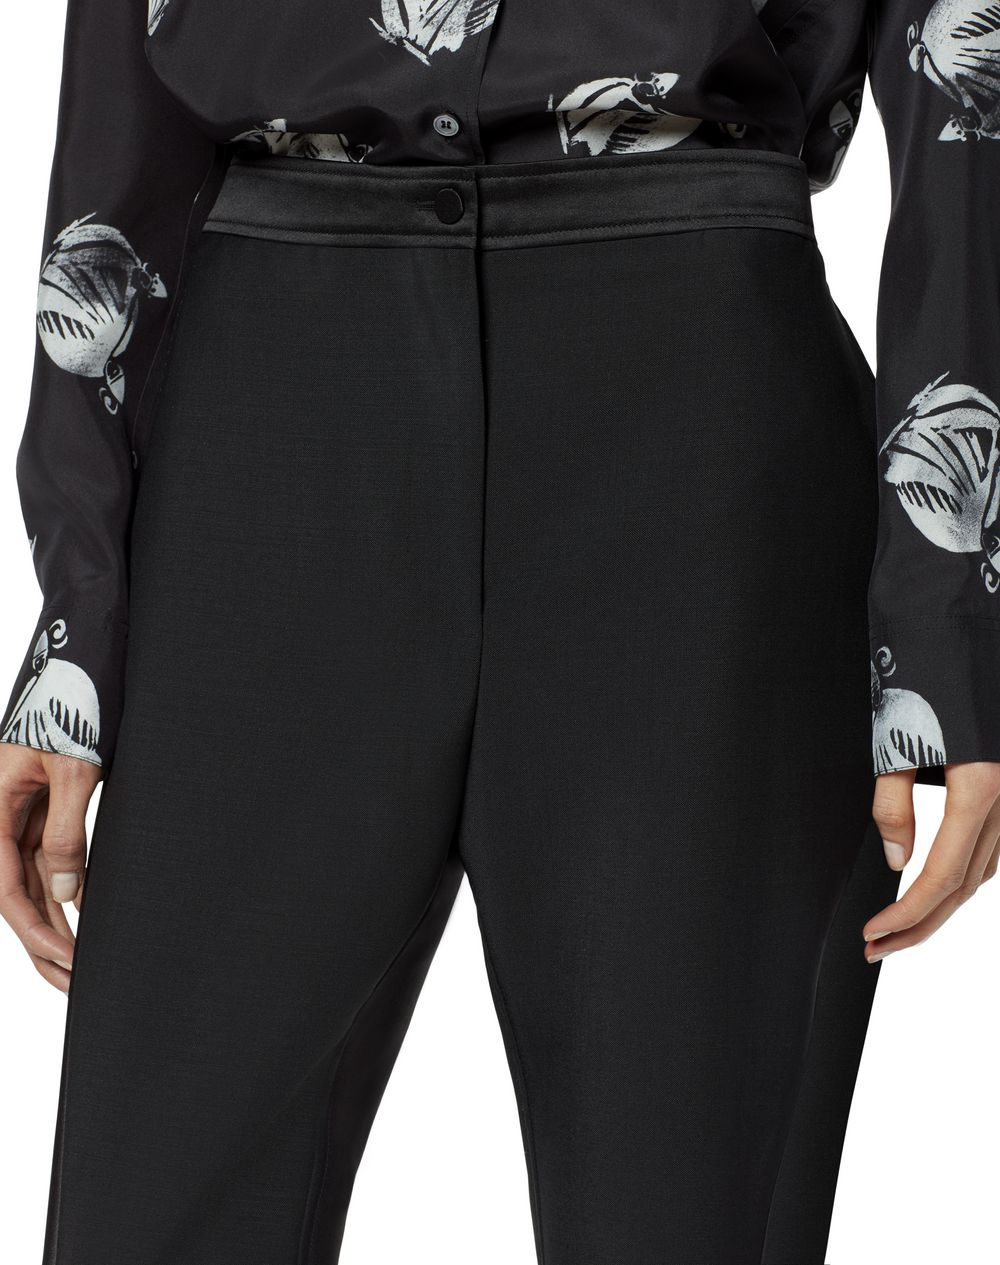 SATIN BAND PANTS - Lanvin